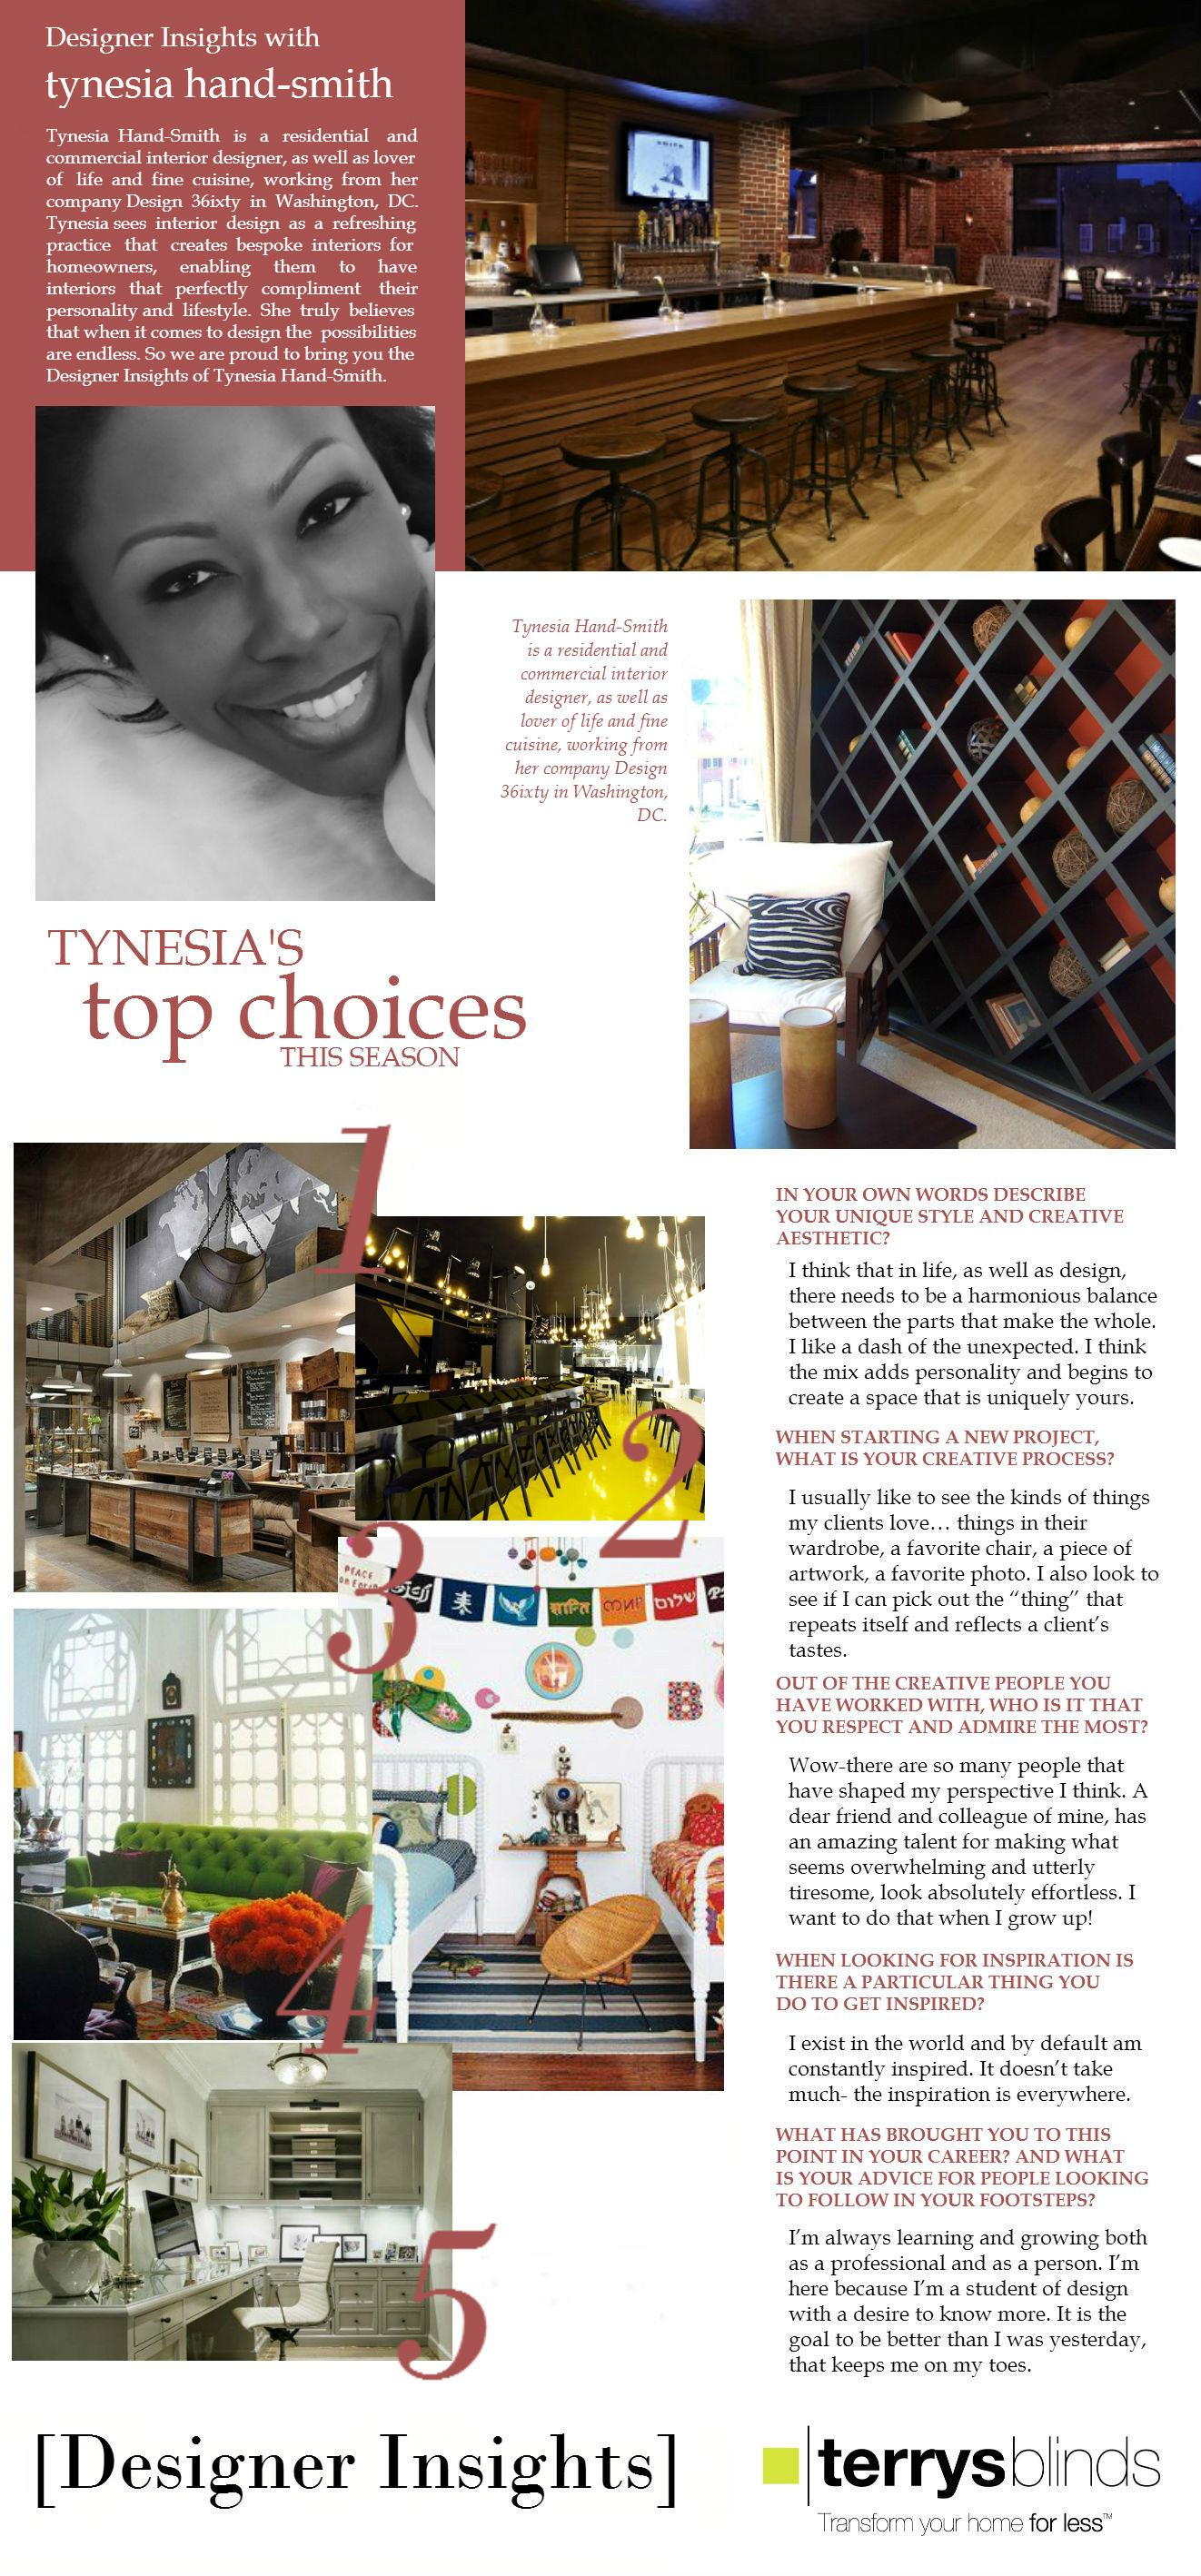 Designer Insights - Tynesia Hand-Smith